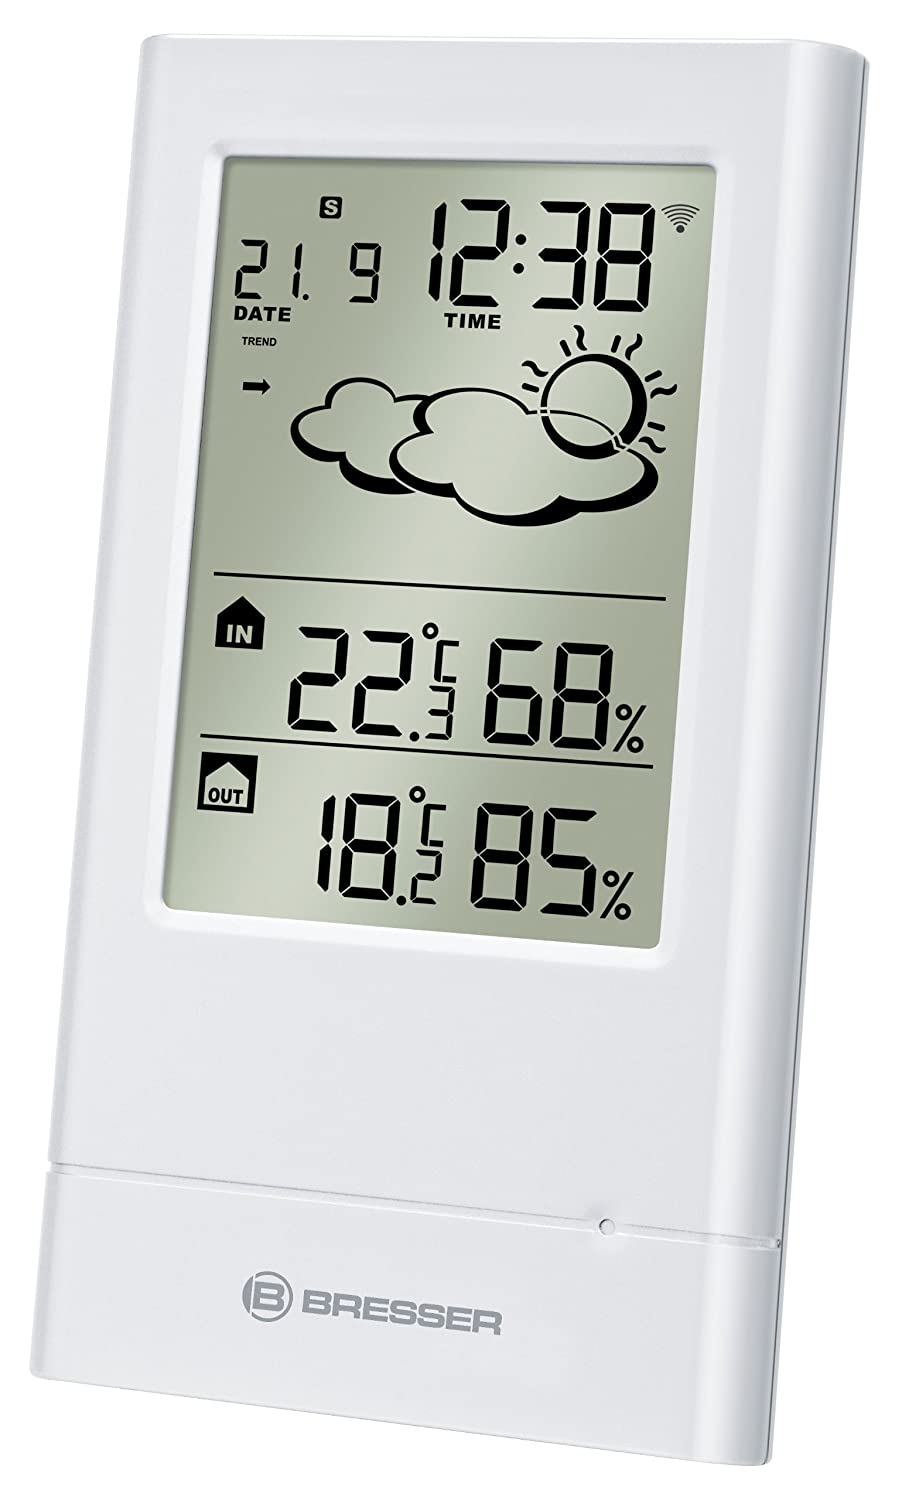 Bresser Weather Station Temp Trend with weather forecast with outdoor sensor, white 7004002